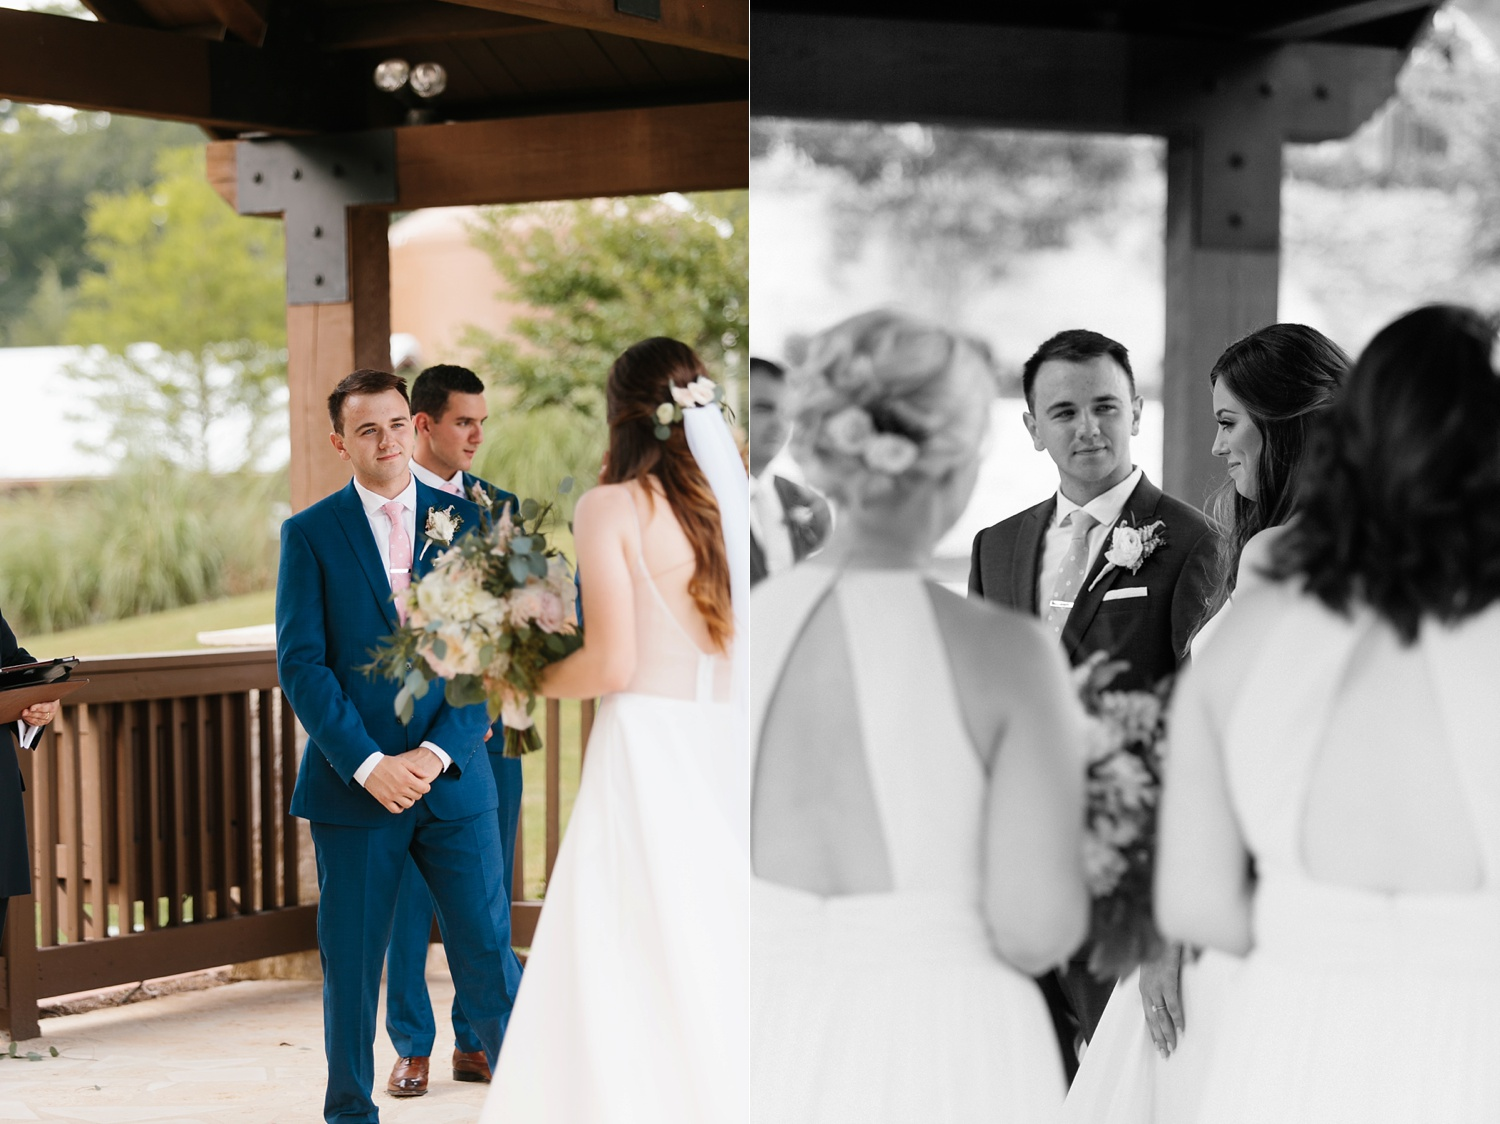 Aleta + Sabian a blush pink and navy blue wedding at The Springs in Anna, TX by North Texas Wedding Photographer _ Rachel Meagan Photography _ 051